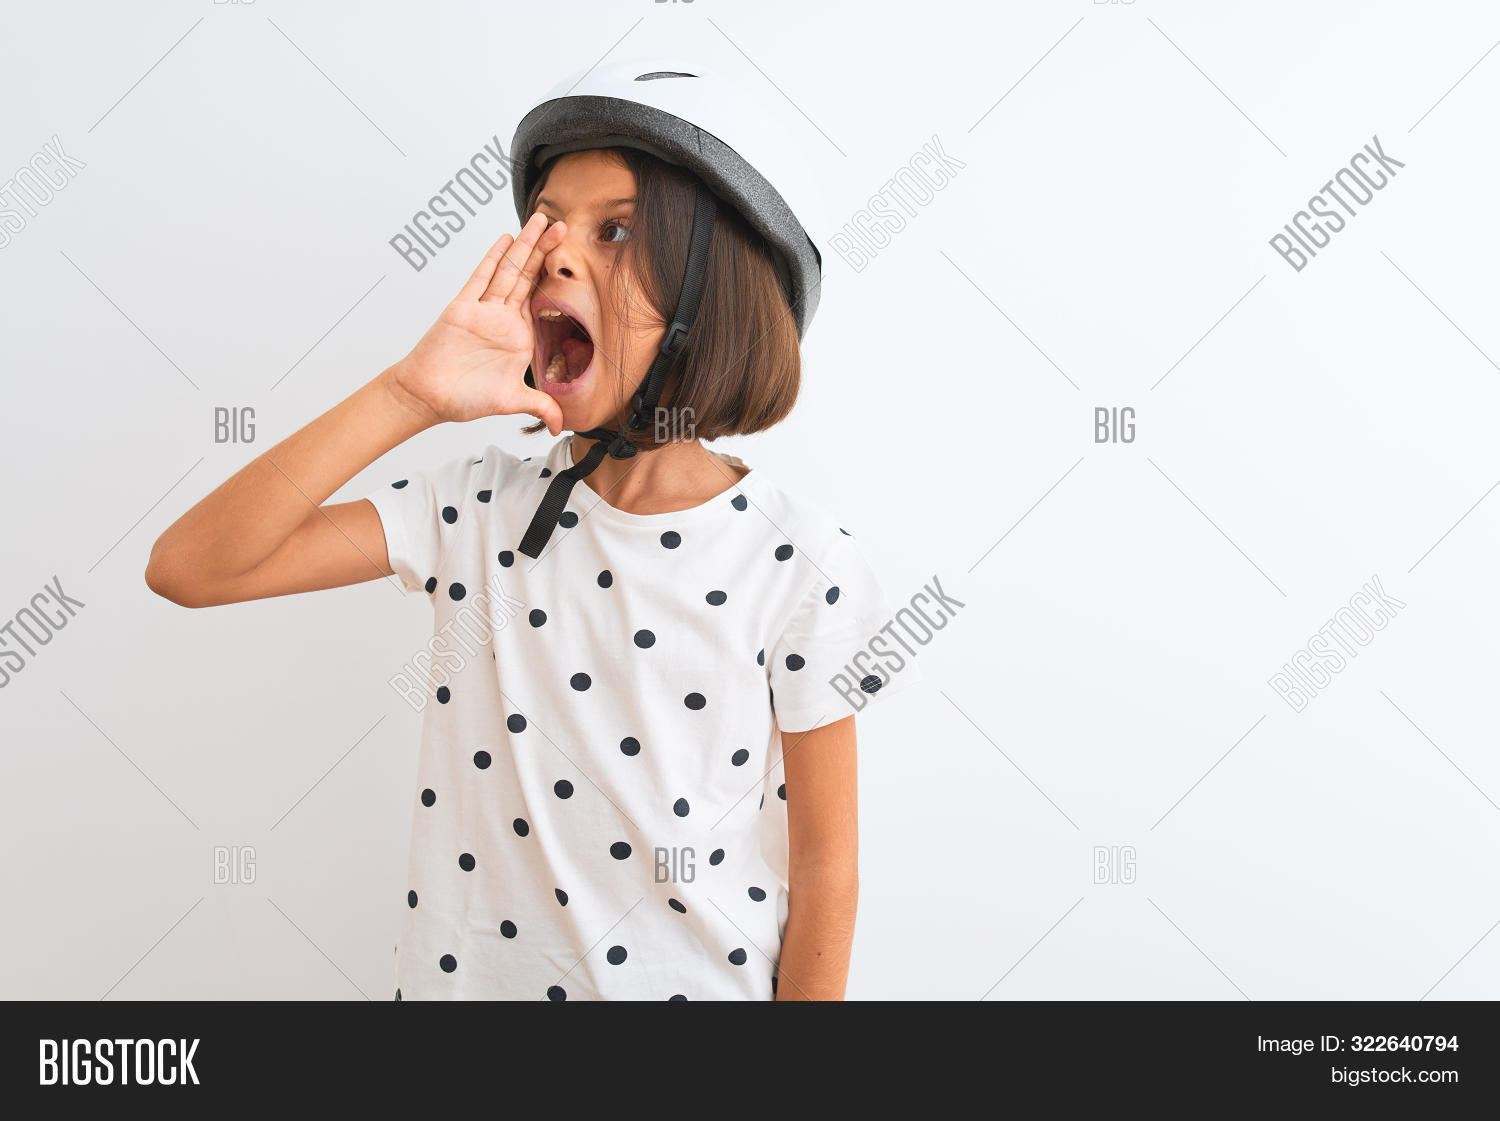 Beautiful child girl wearing security bike helmet standing over isolated white background shouting a